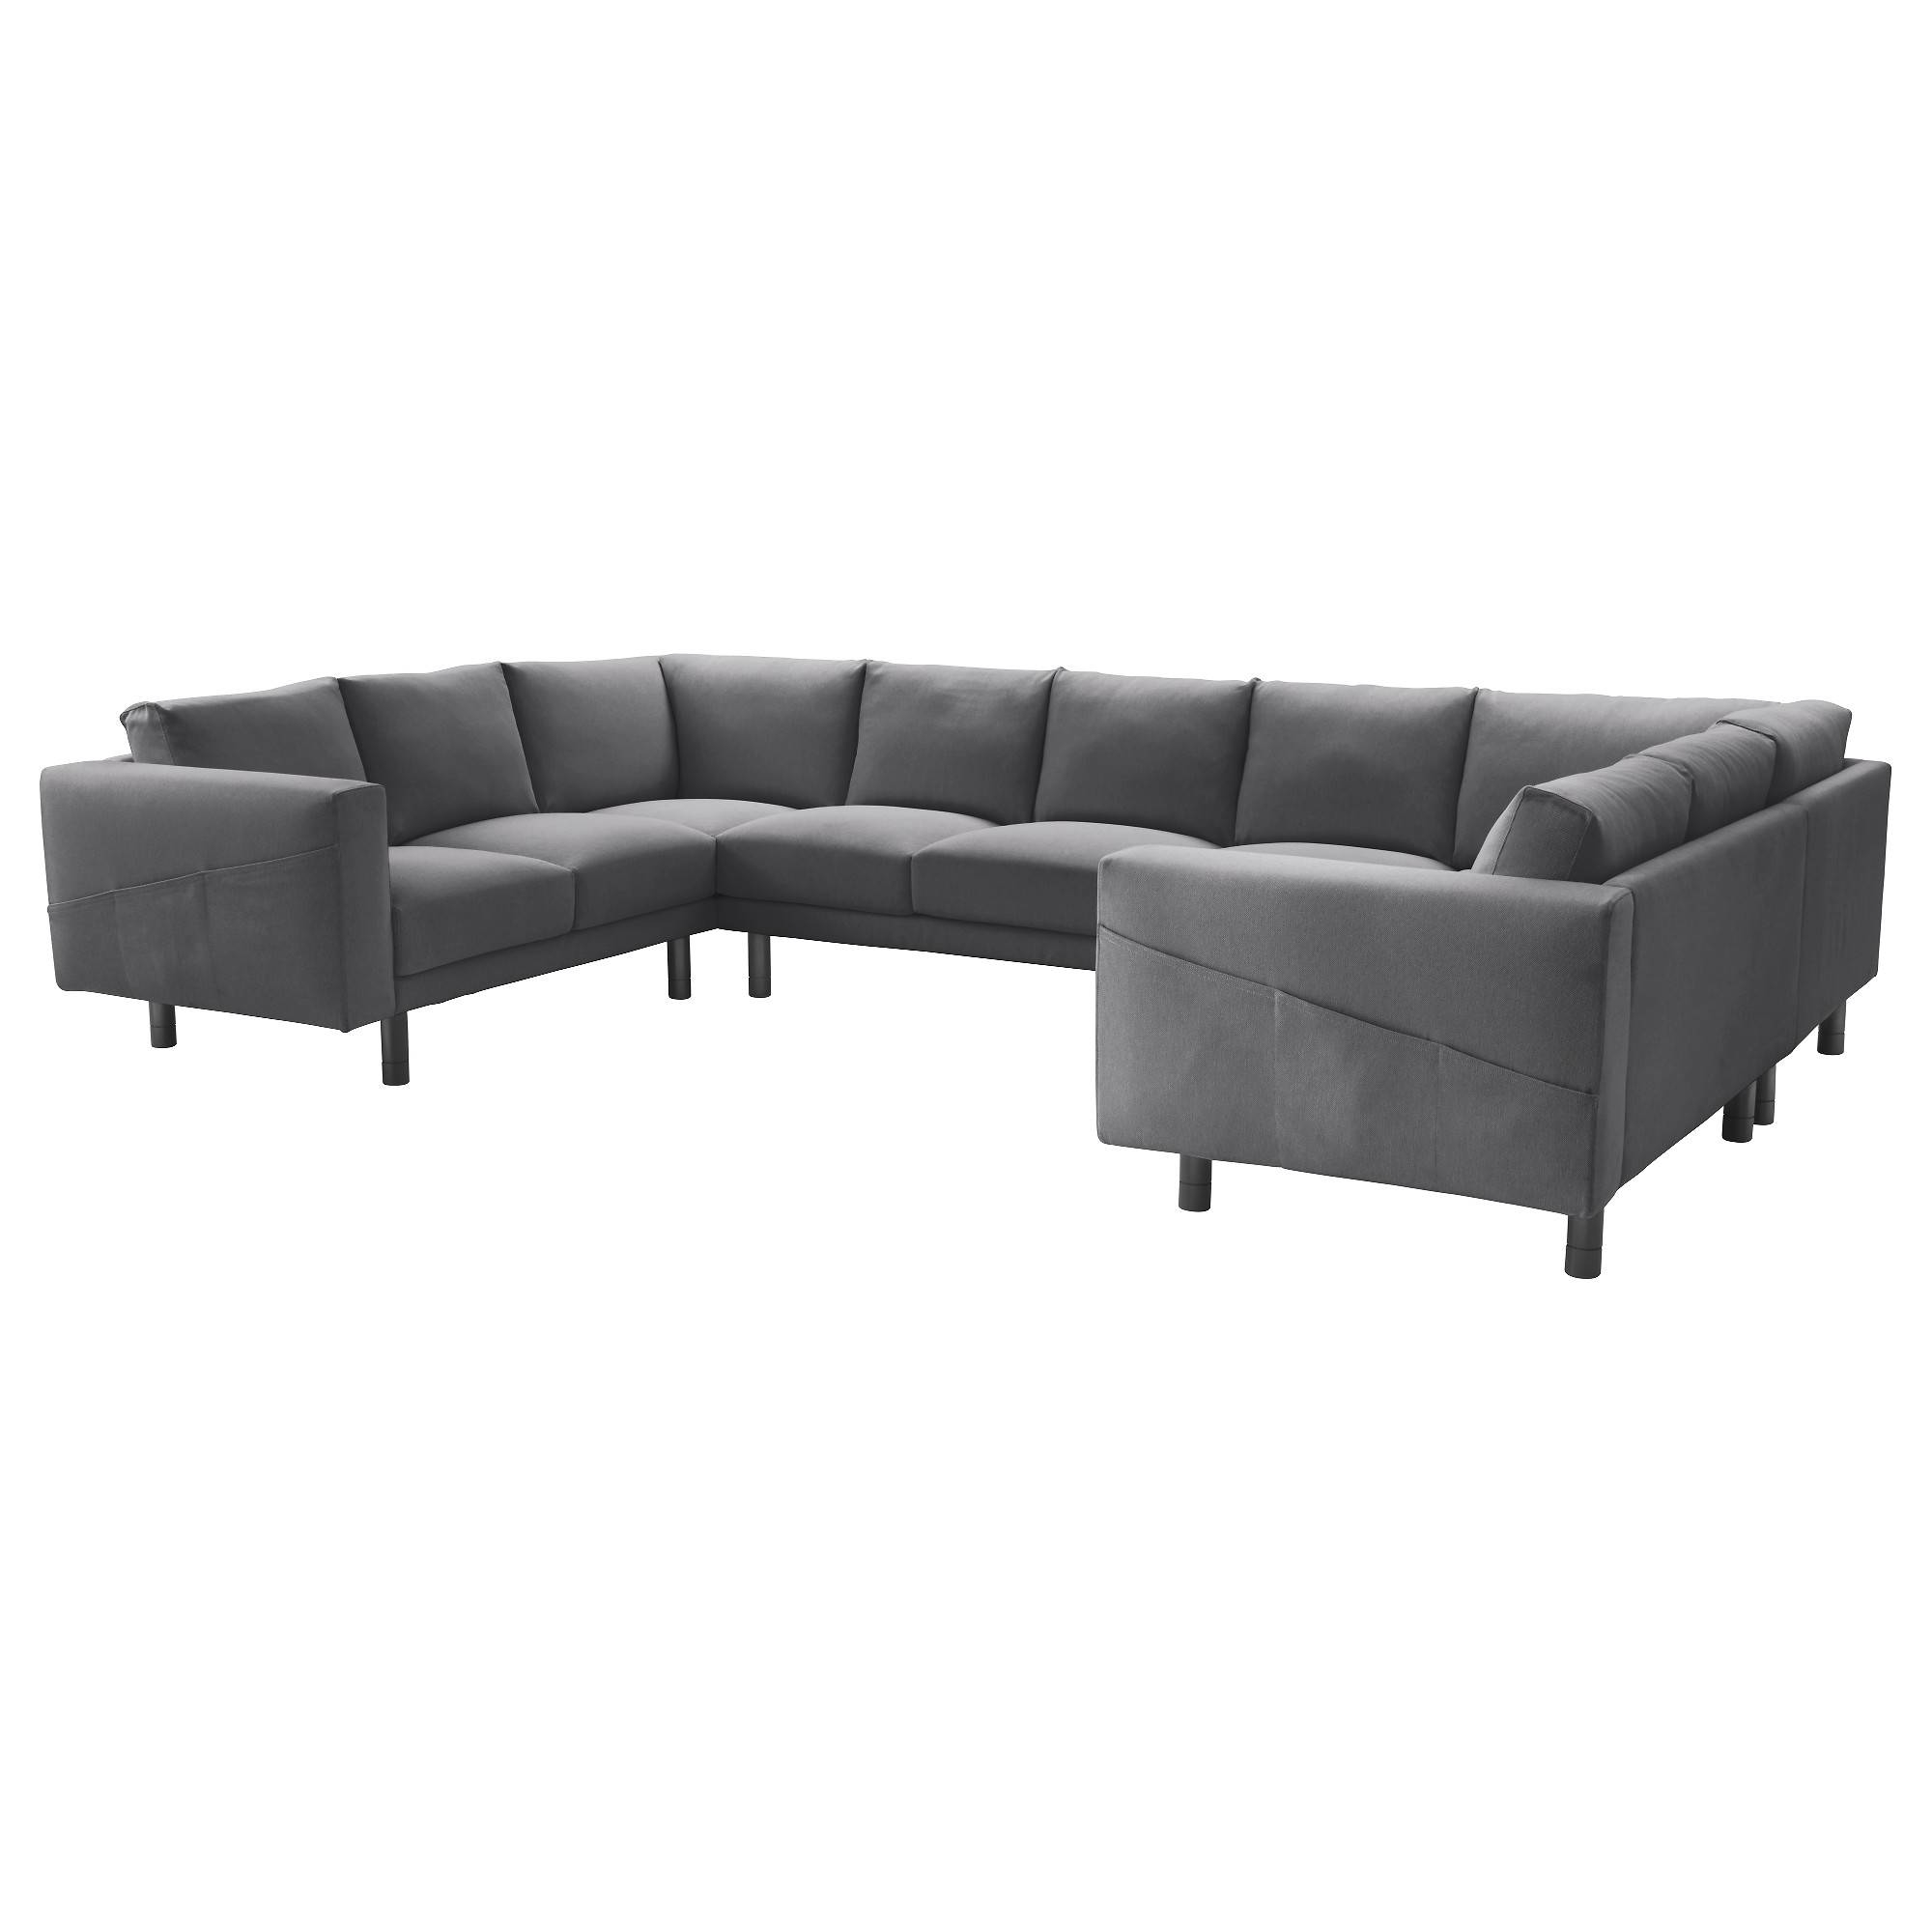 Norsborg Sectional, 7-Seat - Finnsta Dark Gray, Gray - Ikea pertaining to 2 Seat Sectional Sofas (Image 20 of 30)